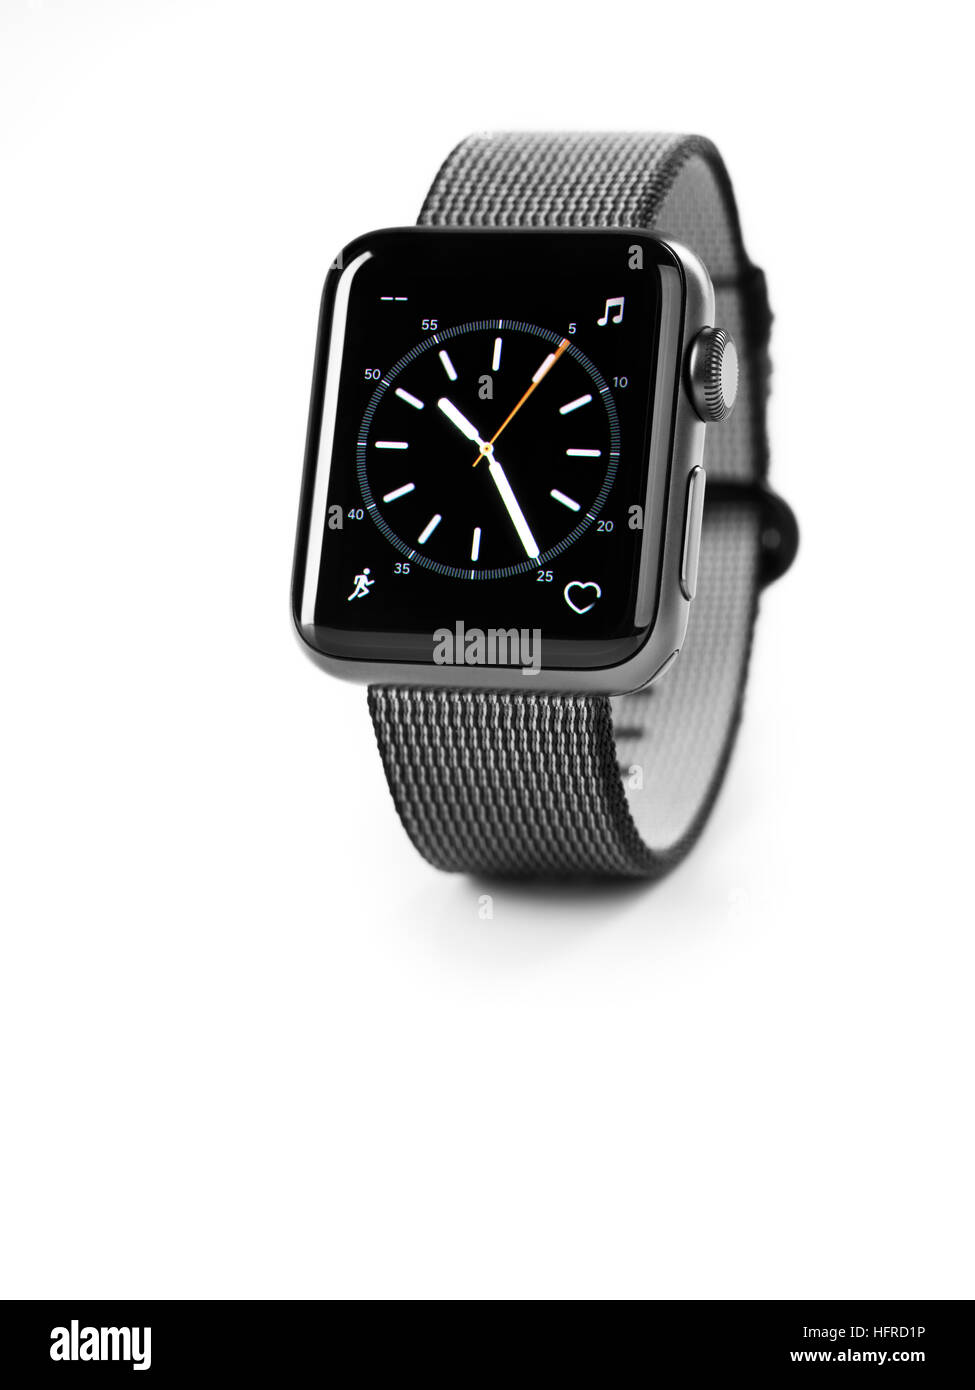 Apple Watch, series 2, smartwatch with analog clock dial on its display - Stock Image